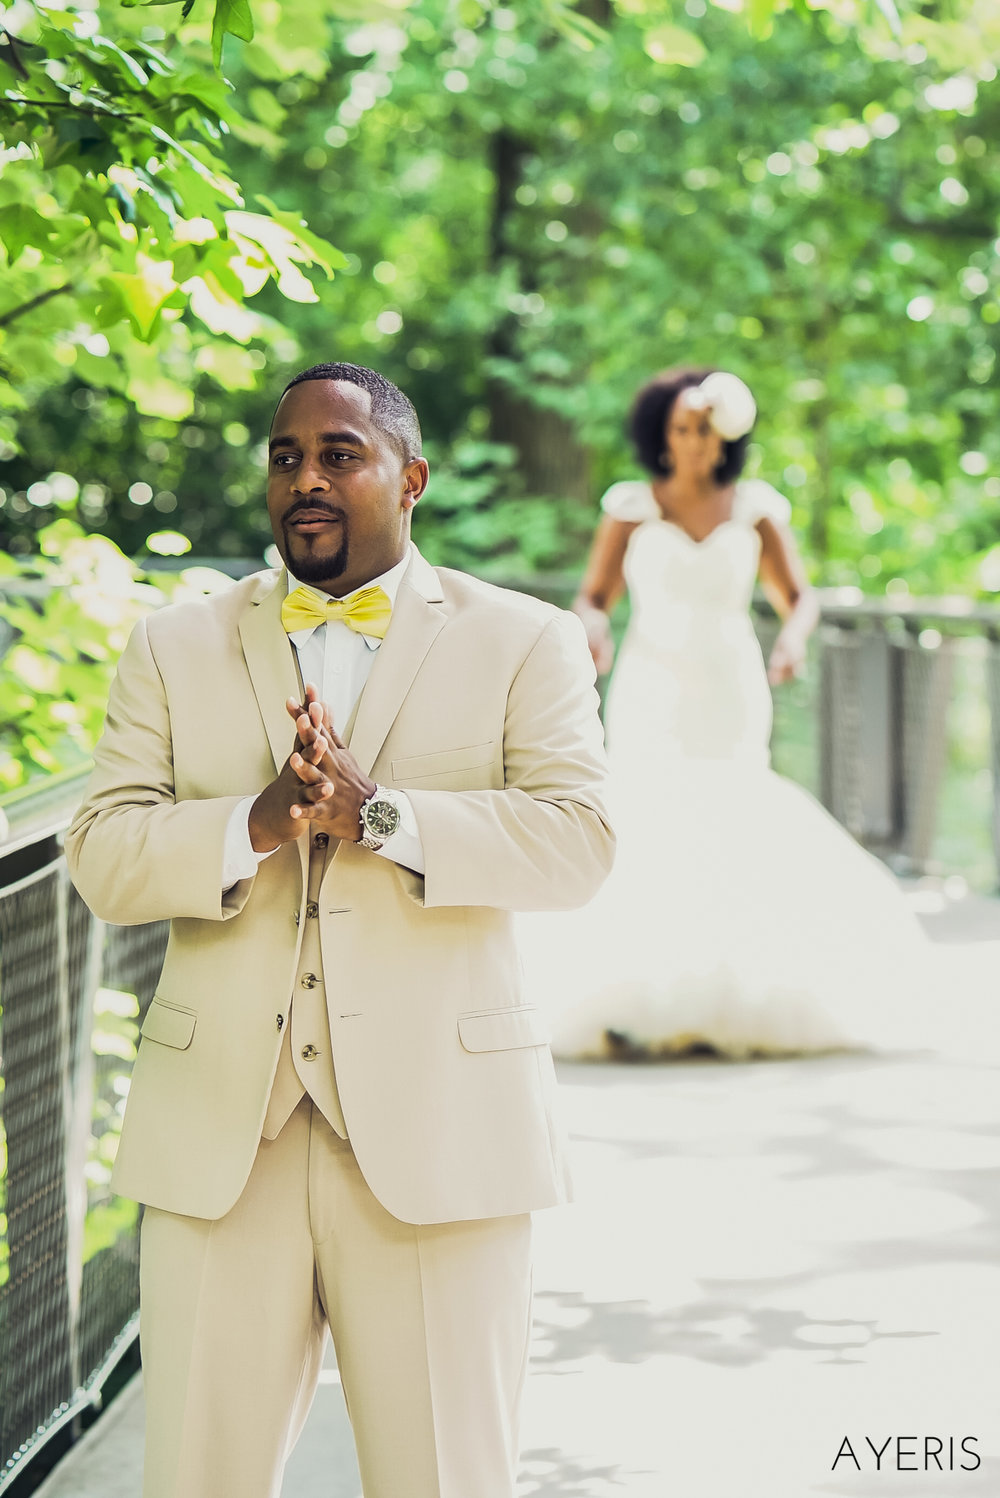 Andrea+Earl's Atlanta Wedding at The Foundry at Puritan Mill by AYERIS Weddings-9.jpg